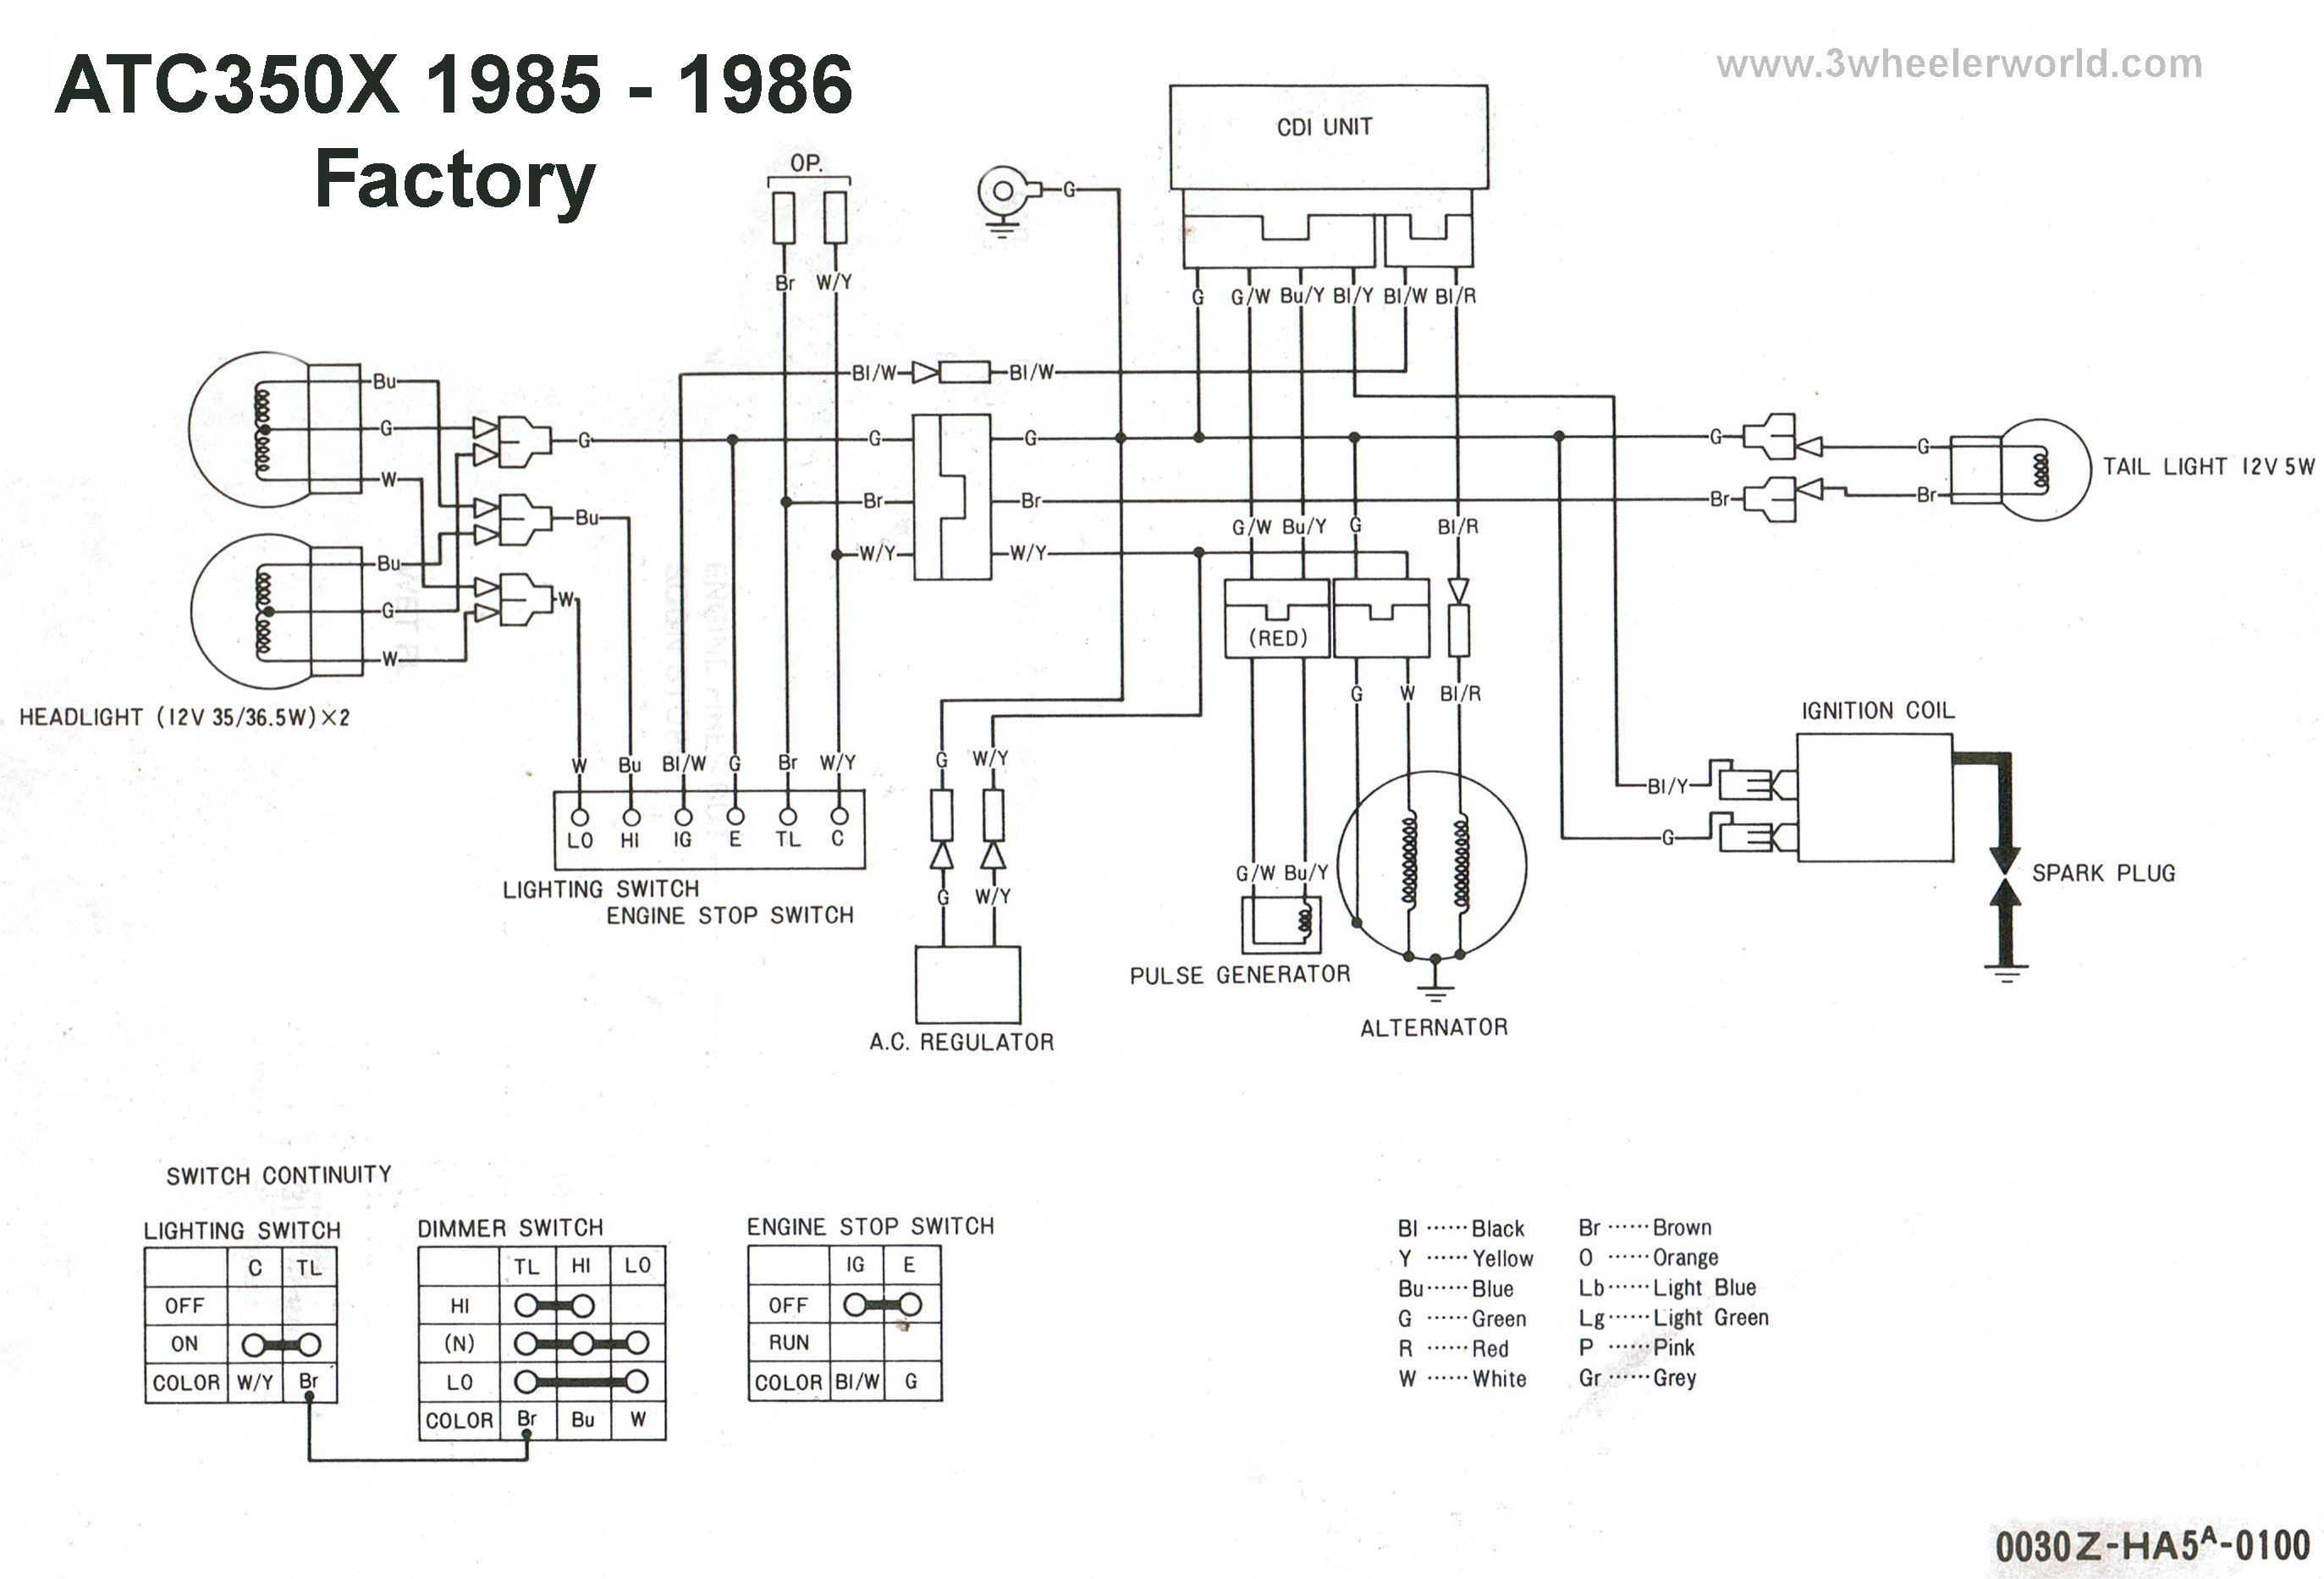 ATC350Xx85Thru86 3 wheeler world tech help honda wiring diagrams honda atv 300 fourtrax 1989 wiring diagram at edmiracle.co